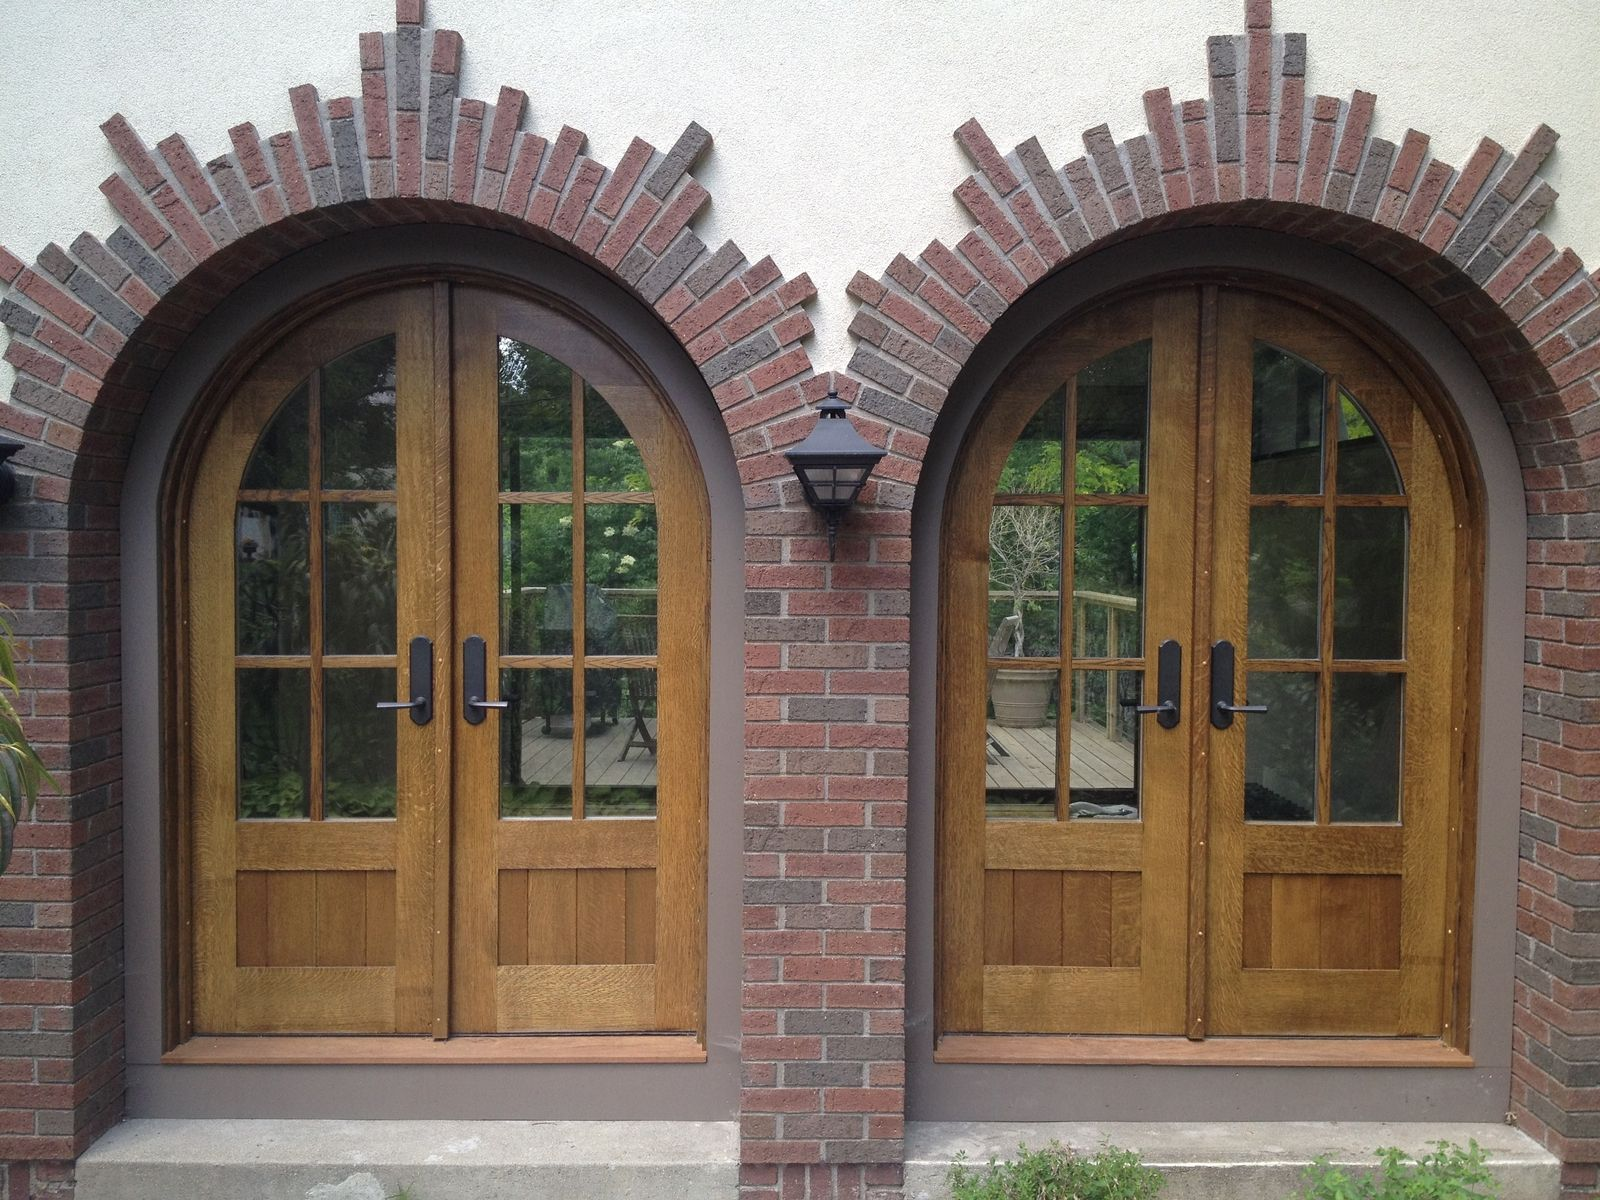 Custom Arched Quarter Sawn White Oak Entry Doors By Huisman Concepts